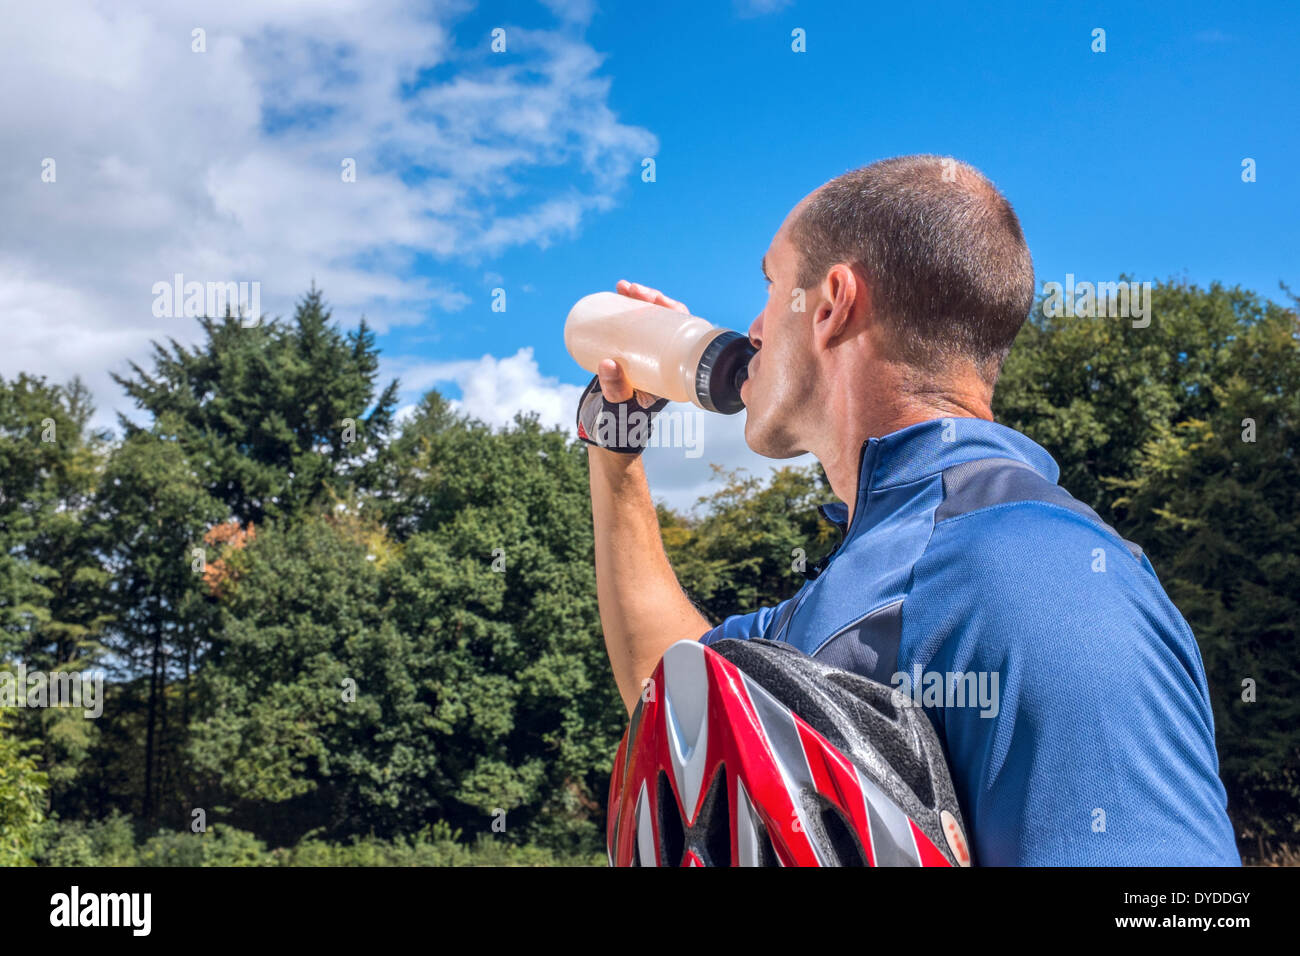 Male cyclist drinking from a water bottle. - Stock Image